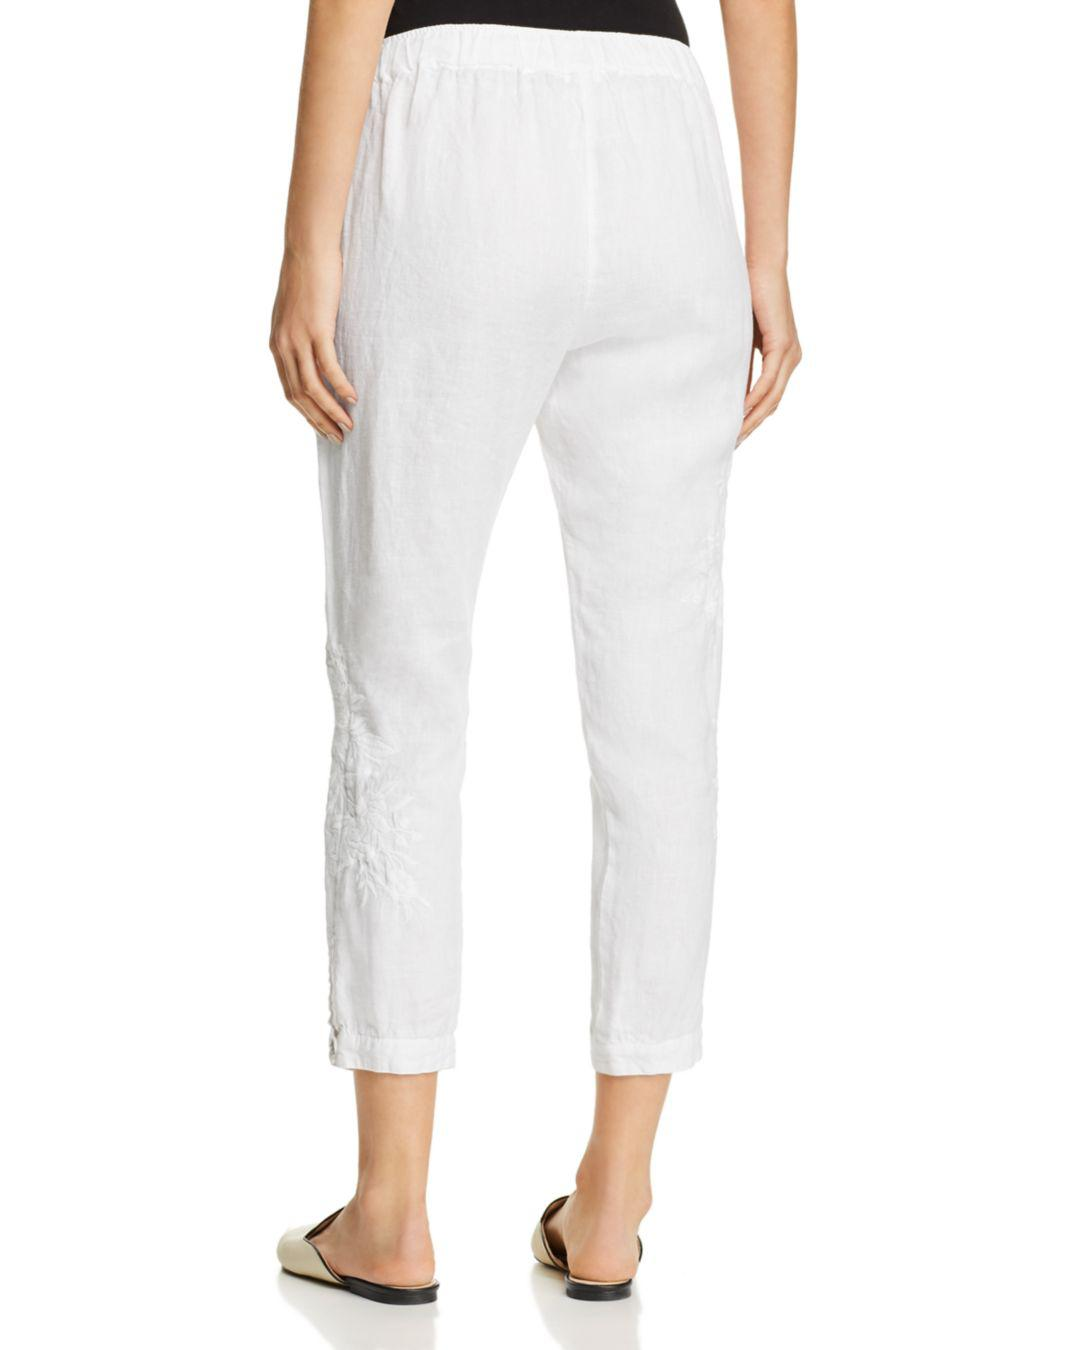 4de3a930b5c Lyst - Johnny Was Sadie Embroidered Linen Crop Pants in White